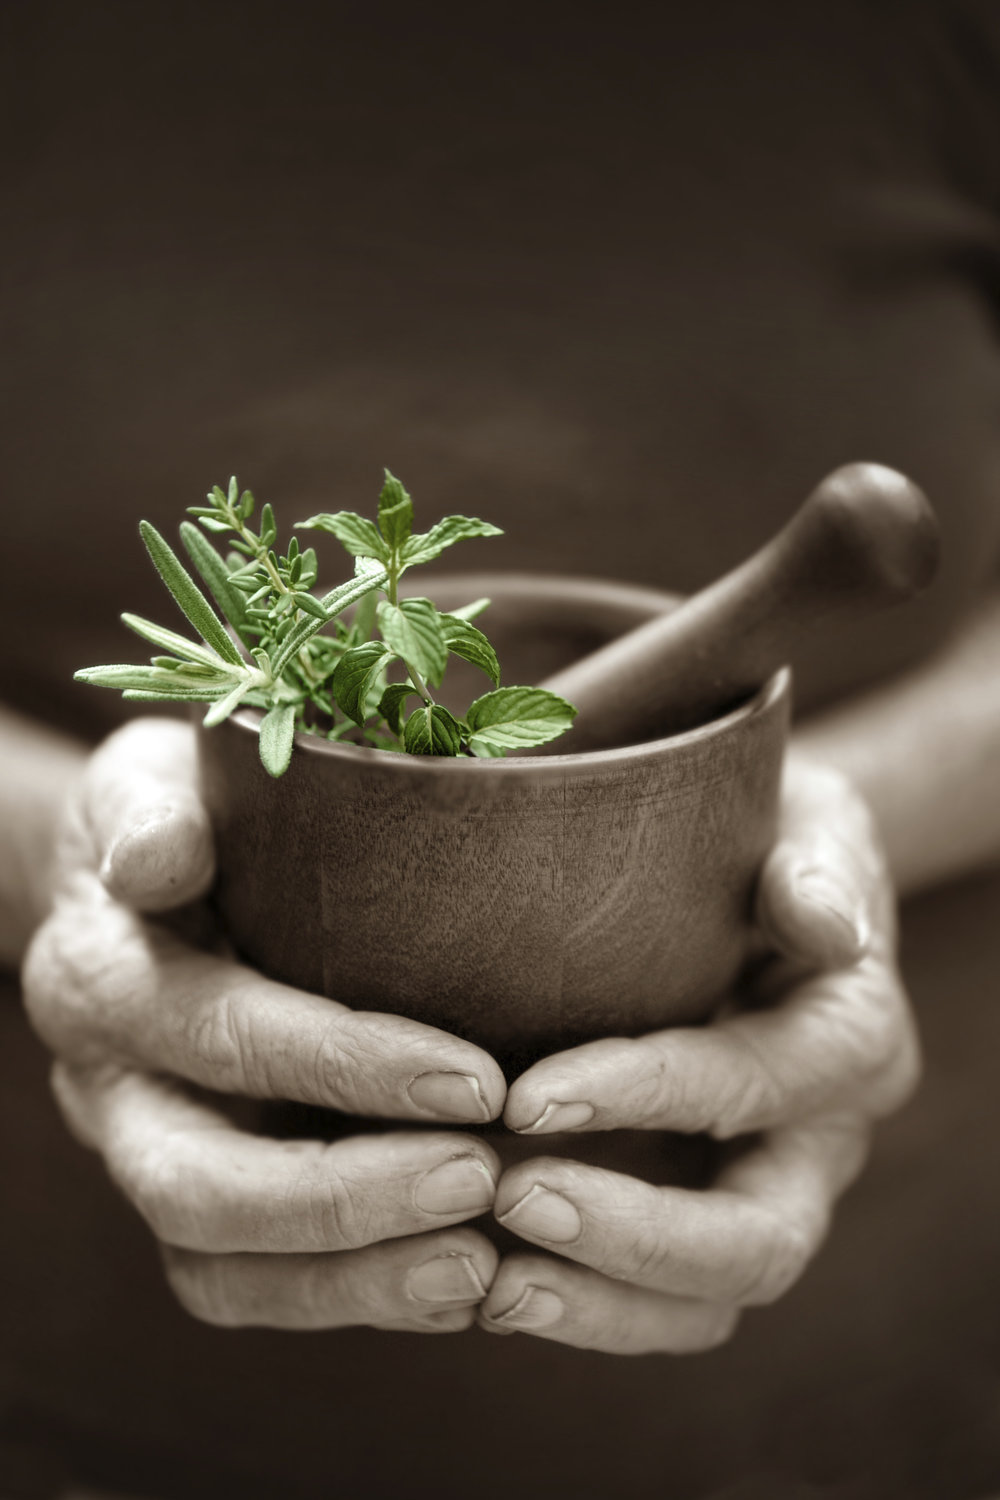 Alternative-Herbs-000010728932_Large.jpg